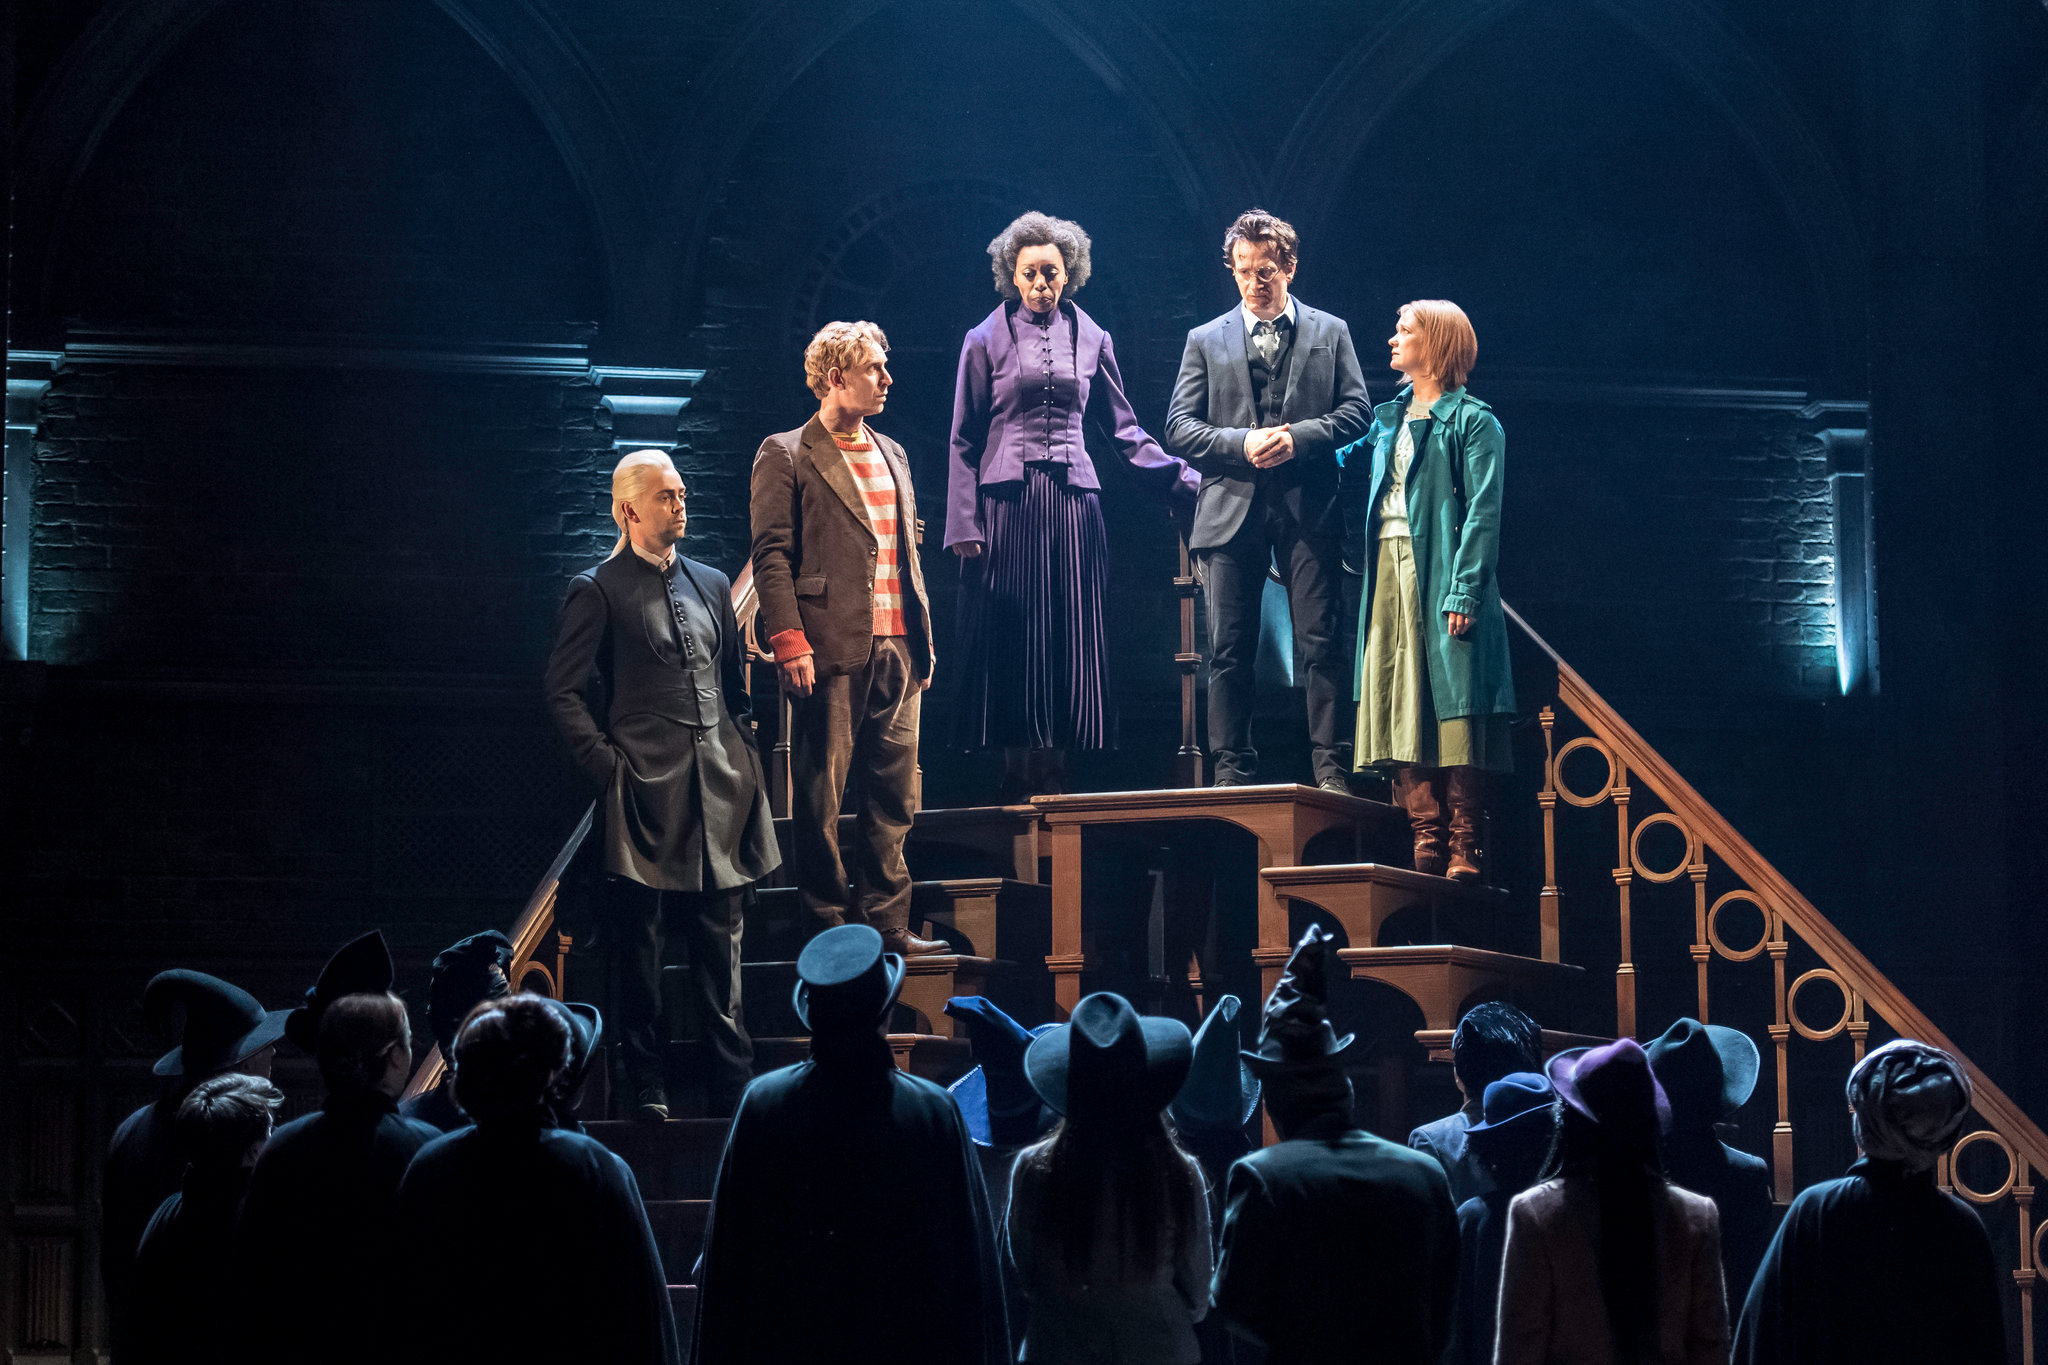 Harry Potter and The Cursed Child - Part 1 & 2 (11/5 7:30PM & 11/6 7:30PM) at Lyric Theatre